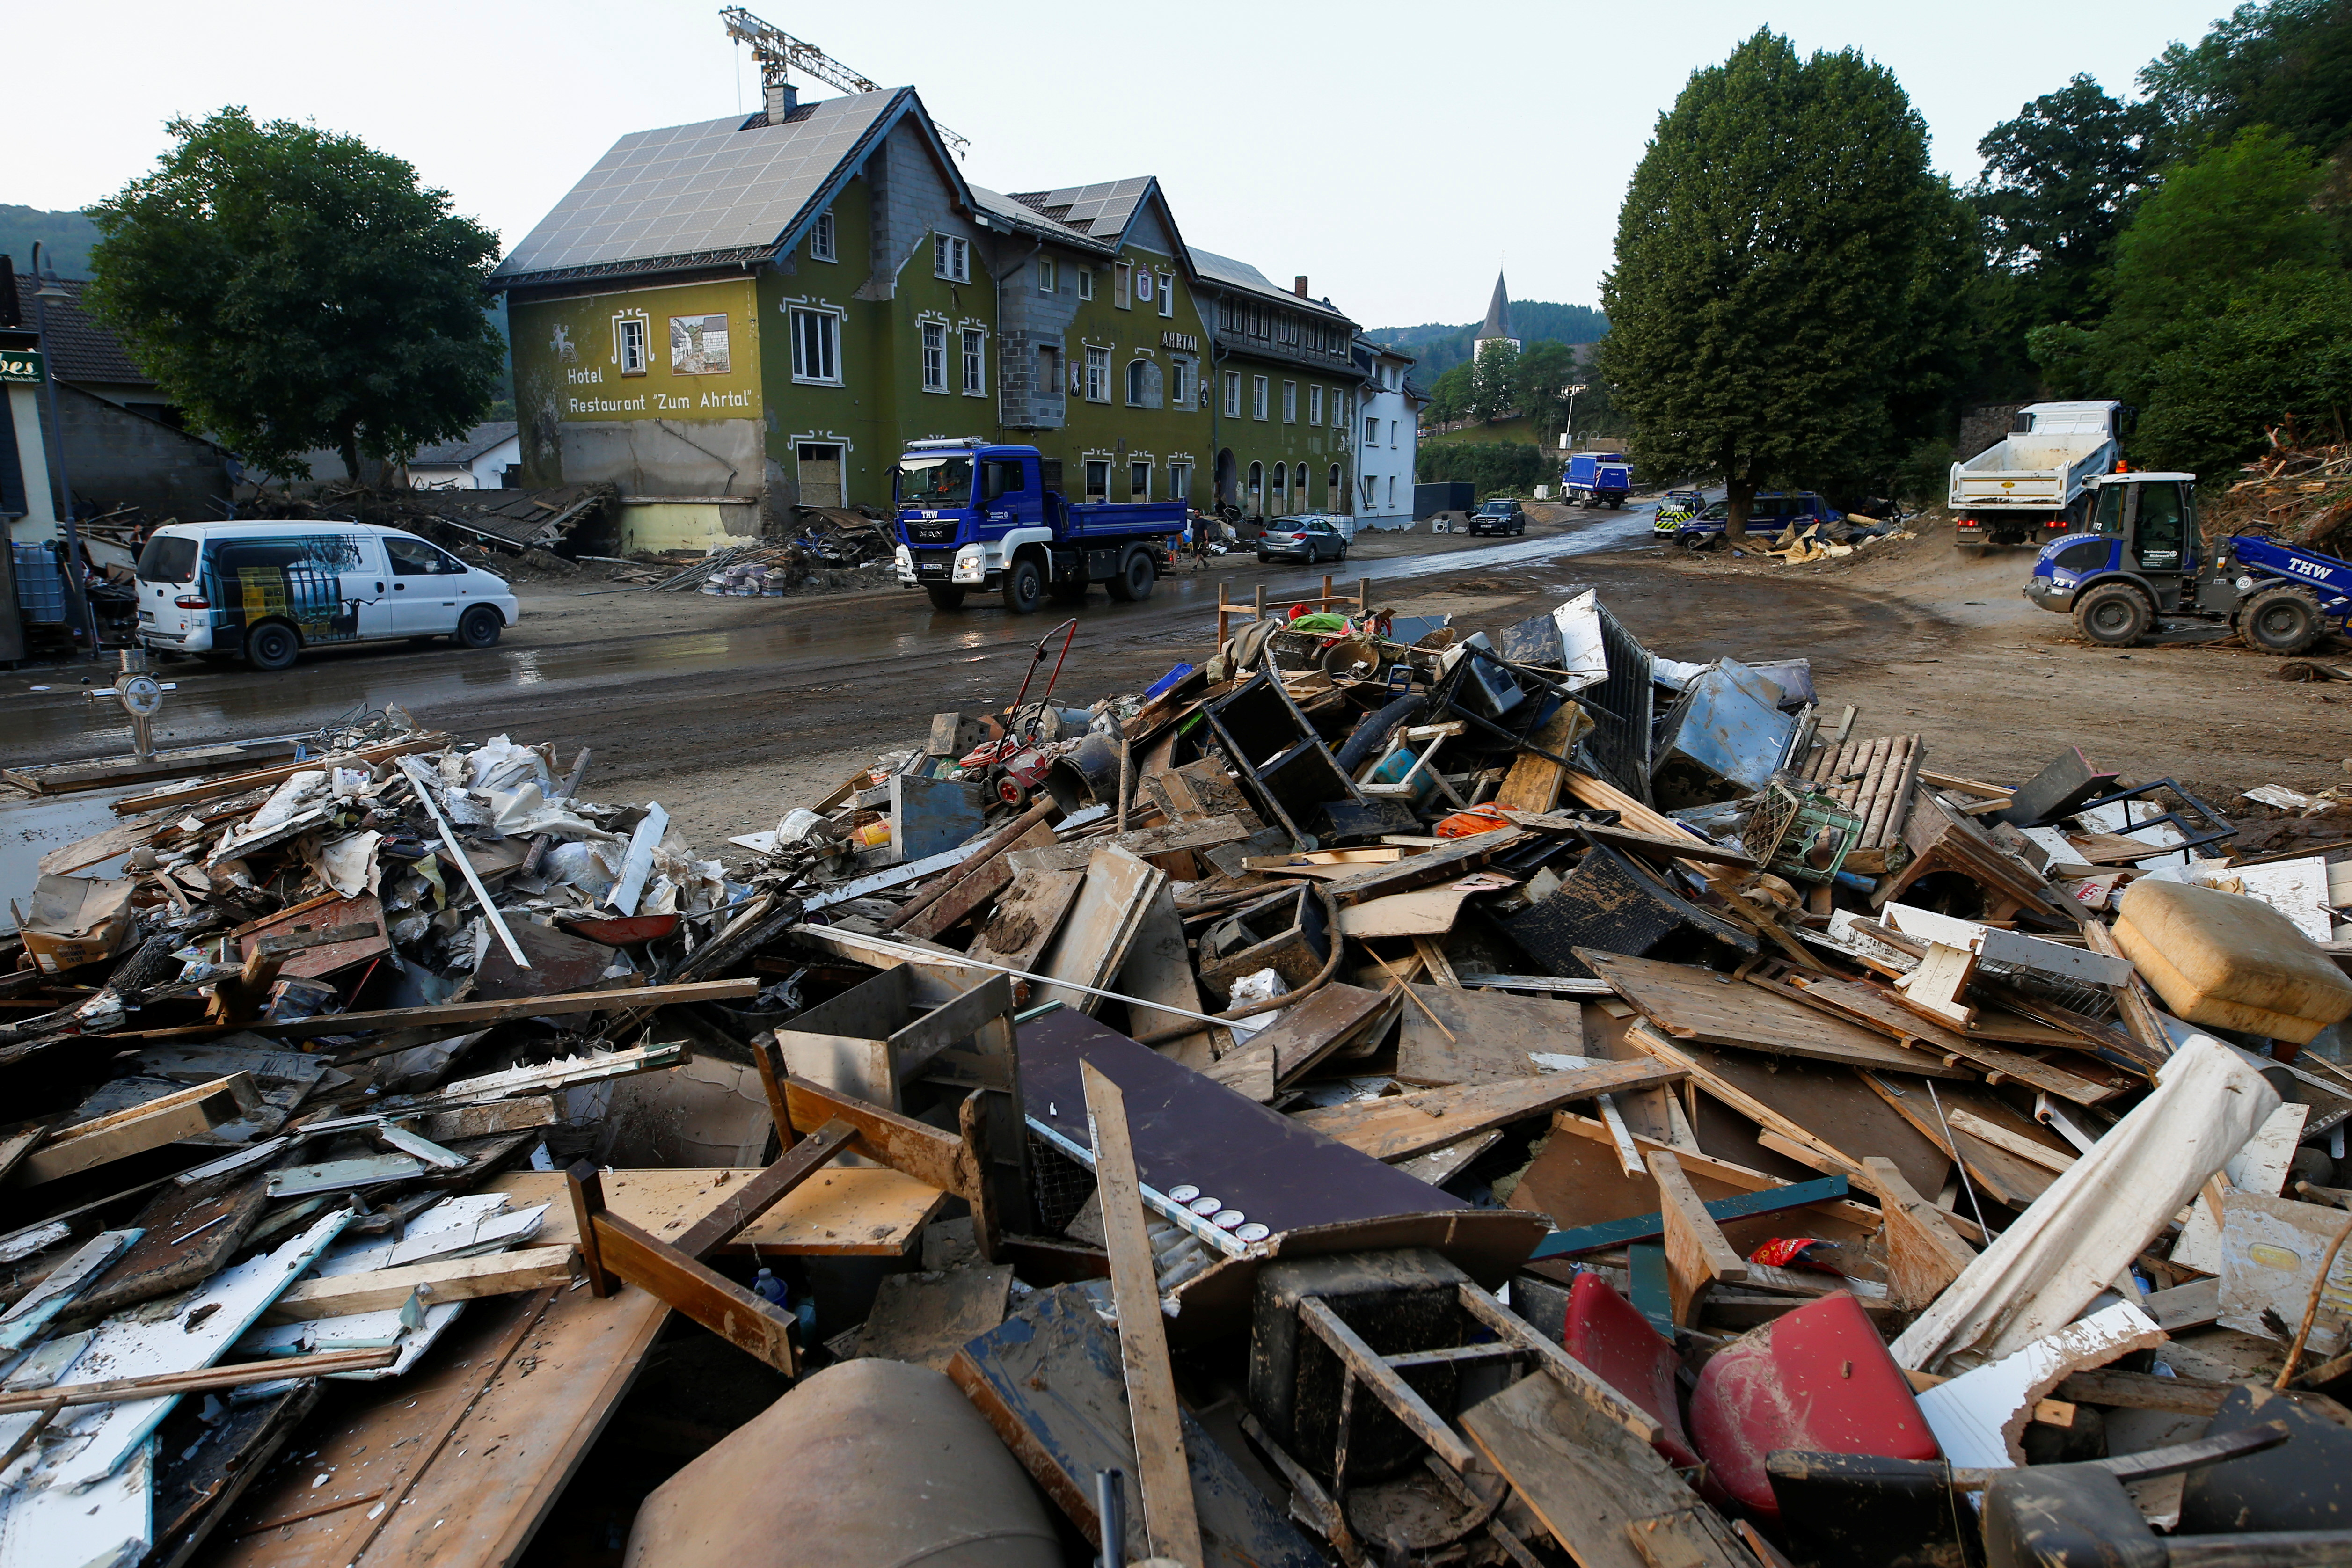 Debris are seen in an area affected by floods caused by heavy rainfalls in Schuld, Germany, July 20, 2021. REUTERS/Thilo Schmuelgen